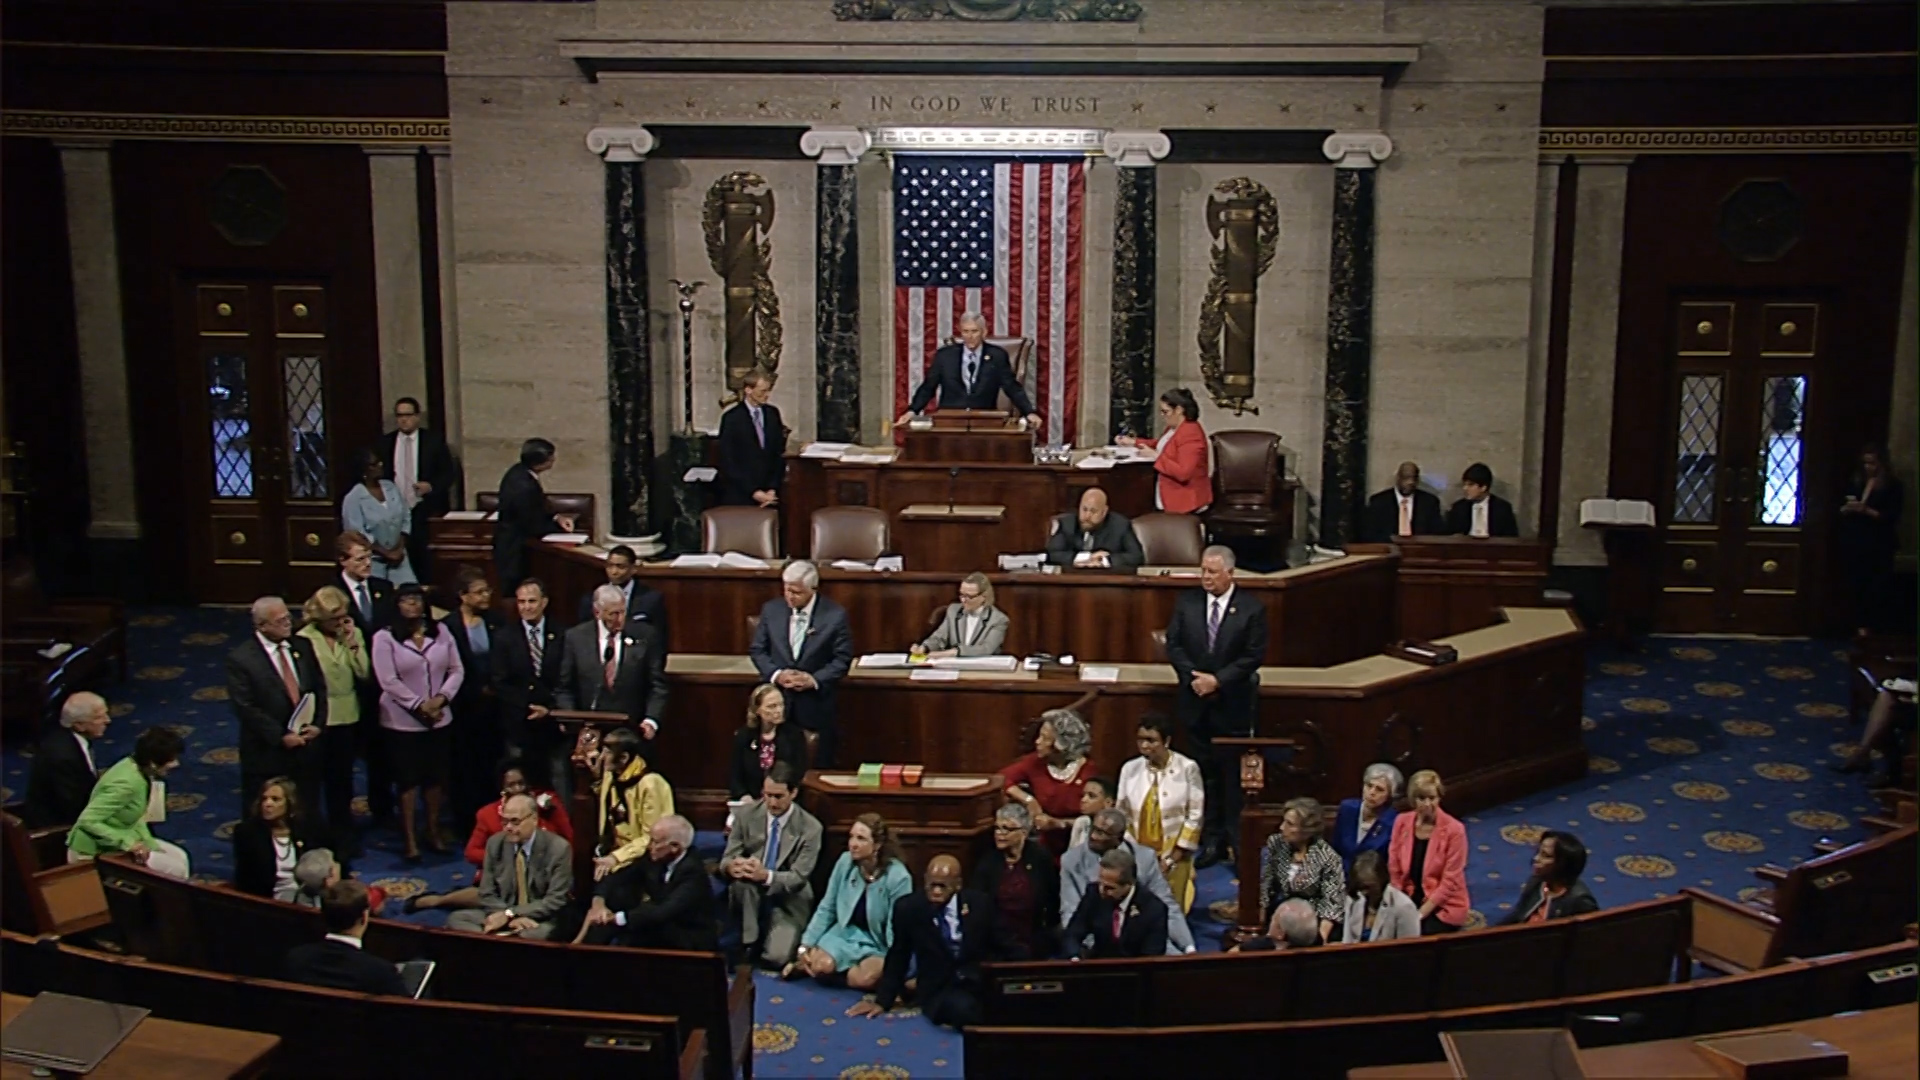 Video: Occupy Congress: Dems hold a sit-in to force gun law vote